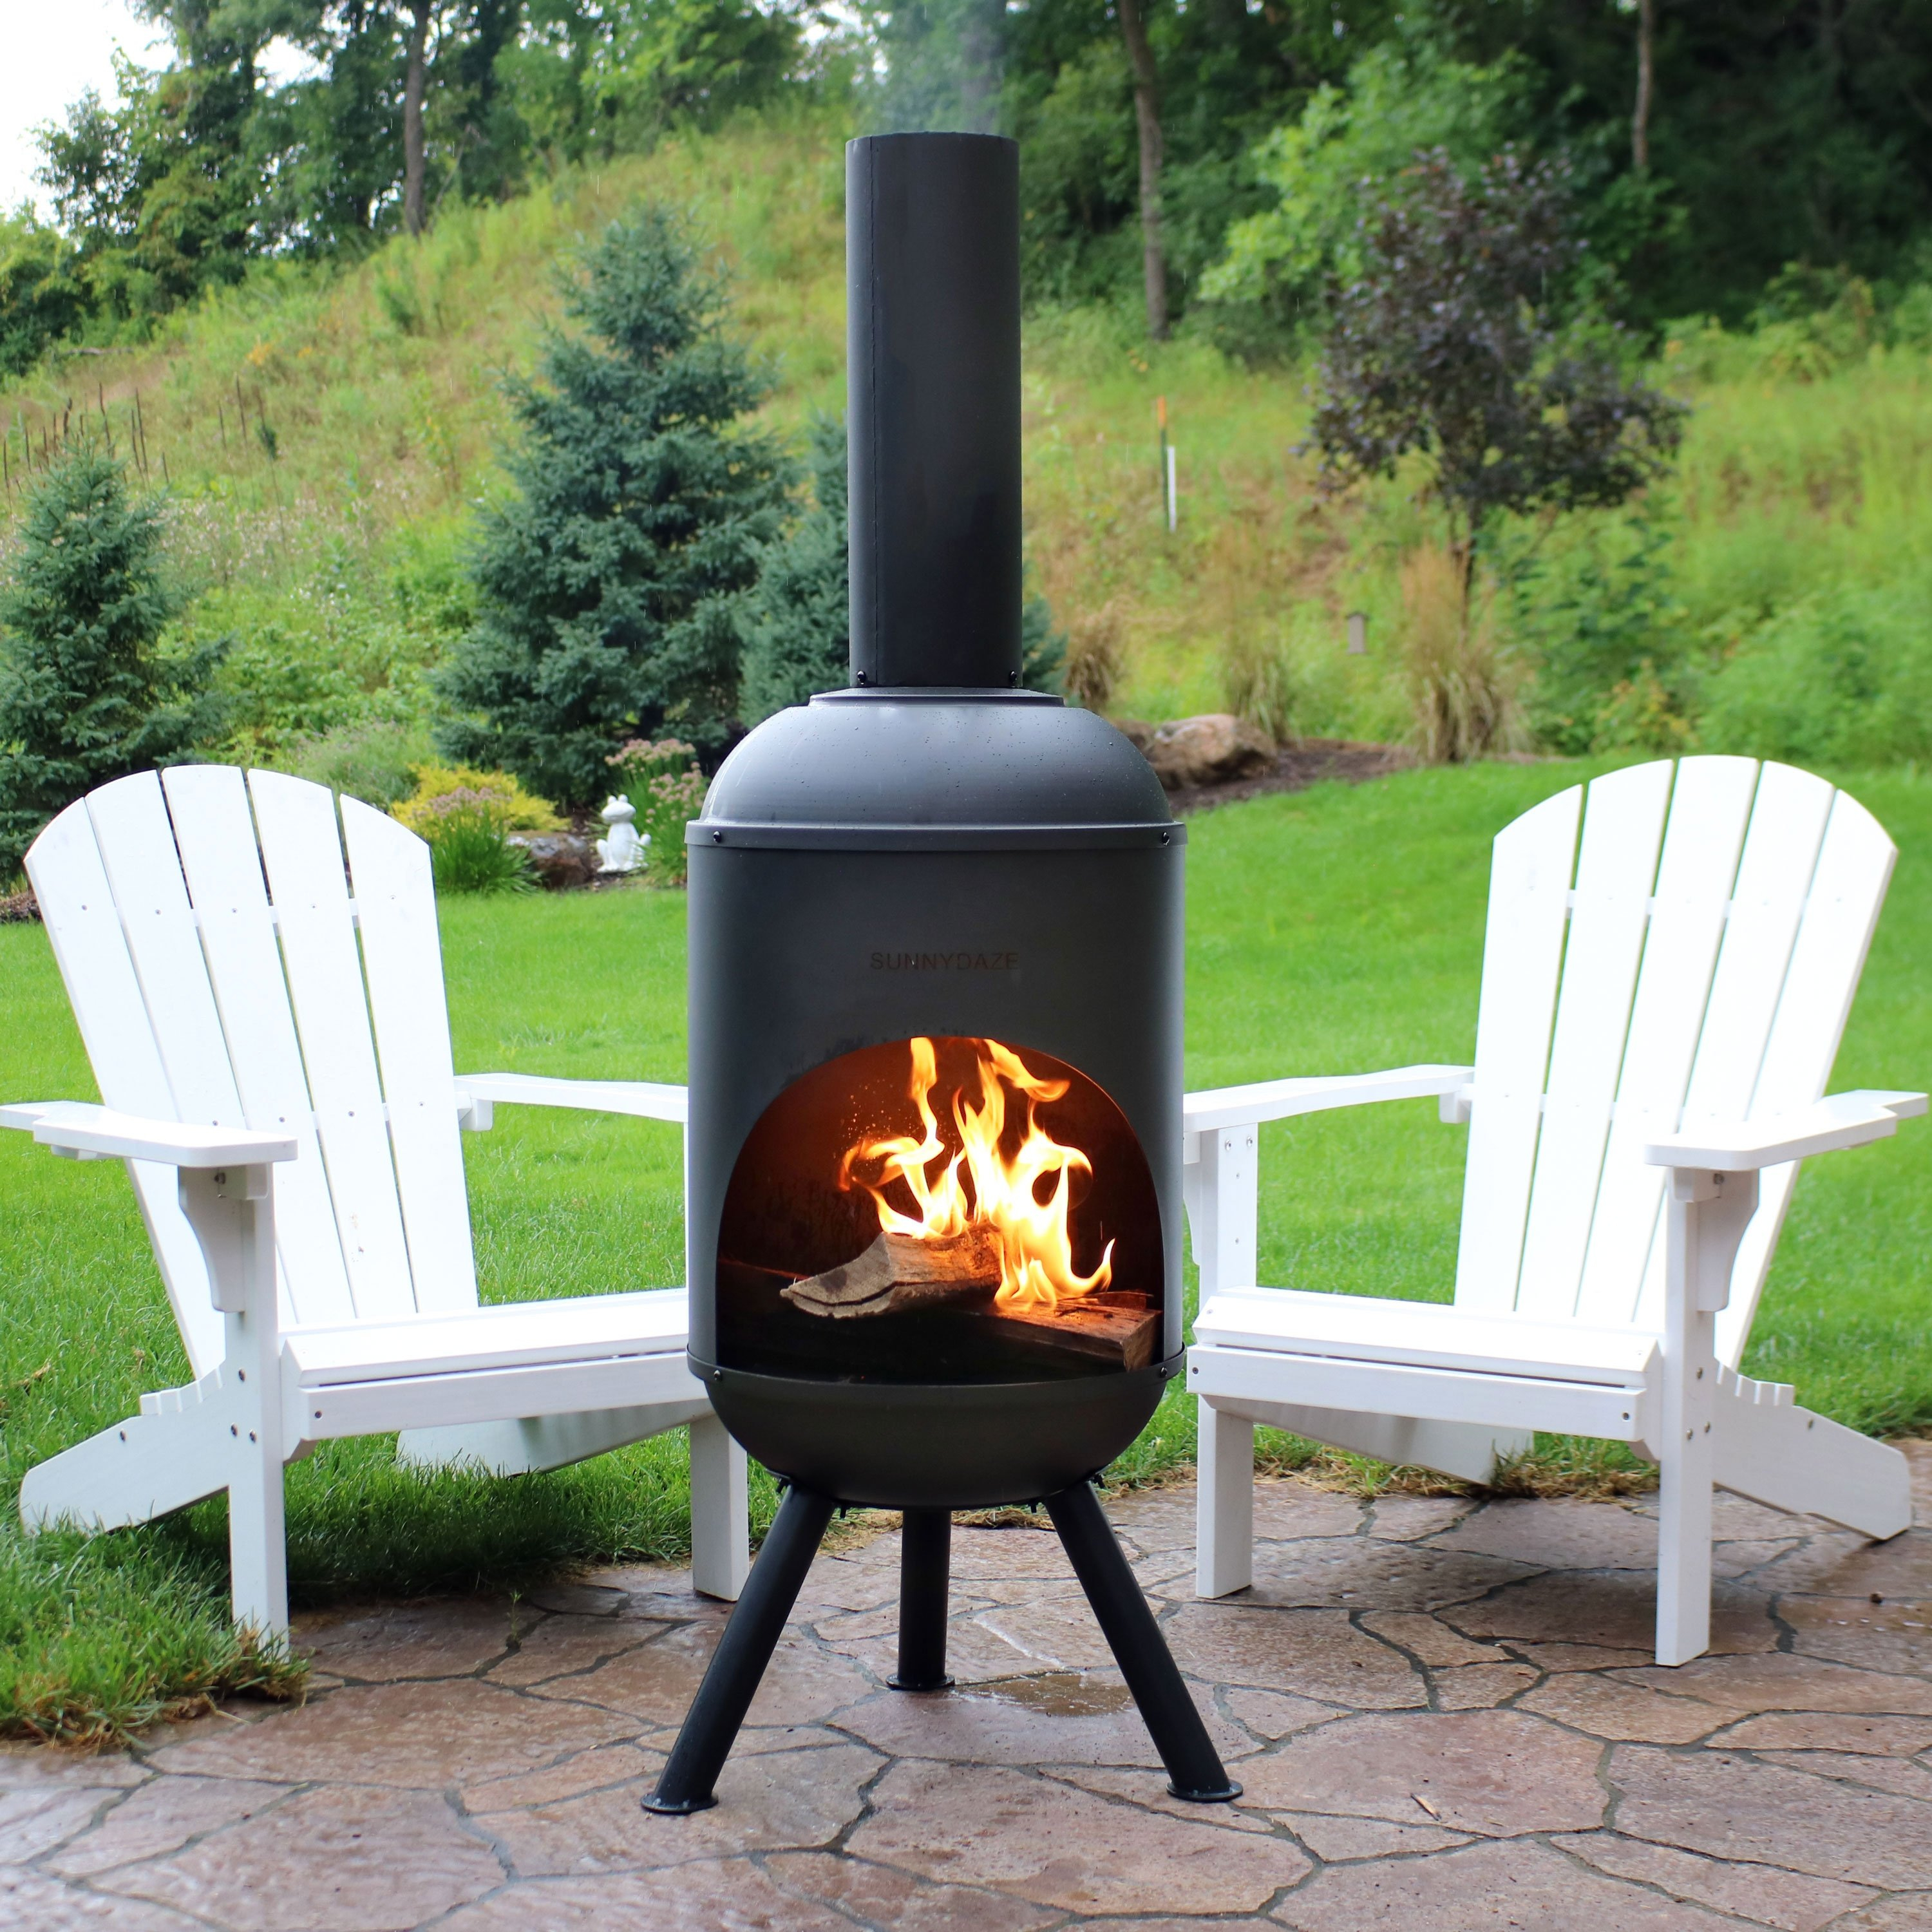 Chiminea On Composite Deck Outdoor Fireplace Wood With Deckorator intended for measurements 3000 X 3000